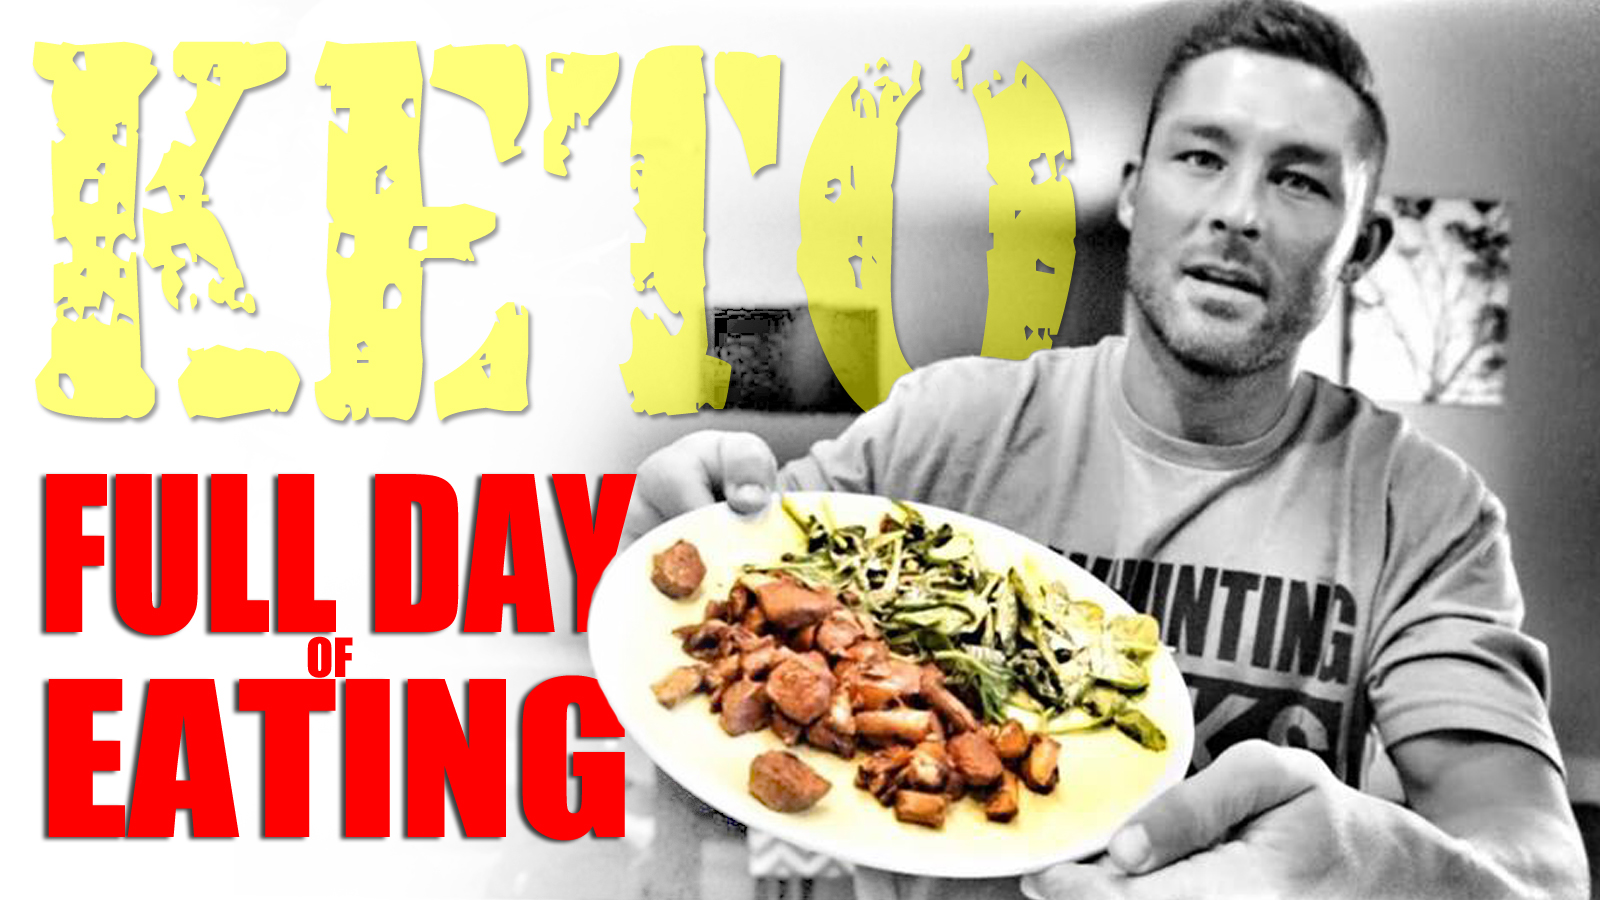 KETO FULL DAY EATING